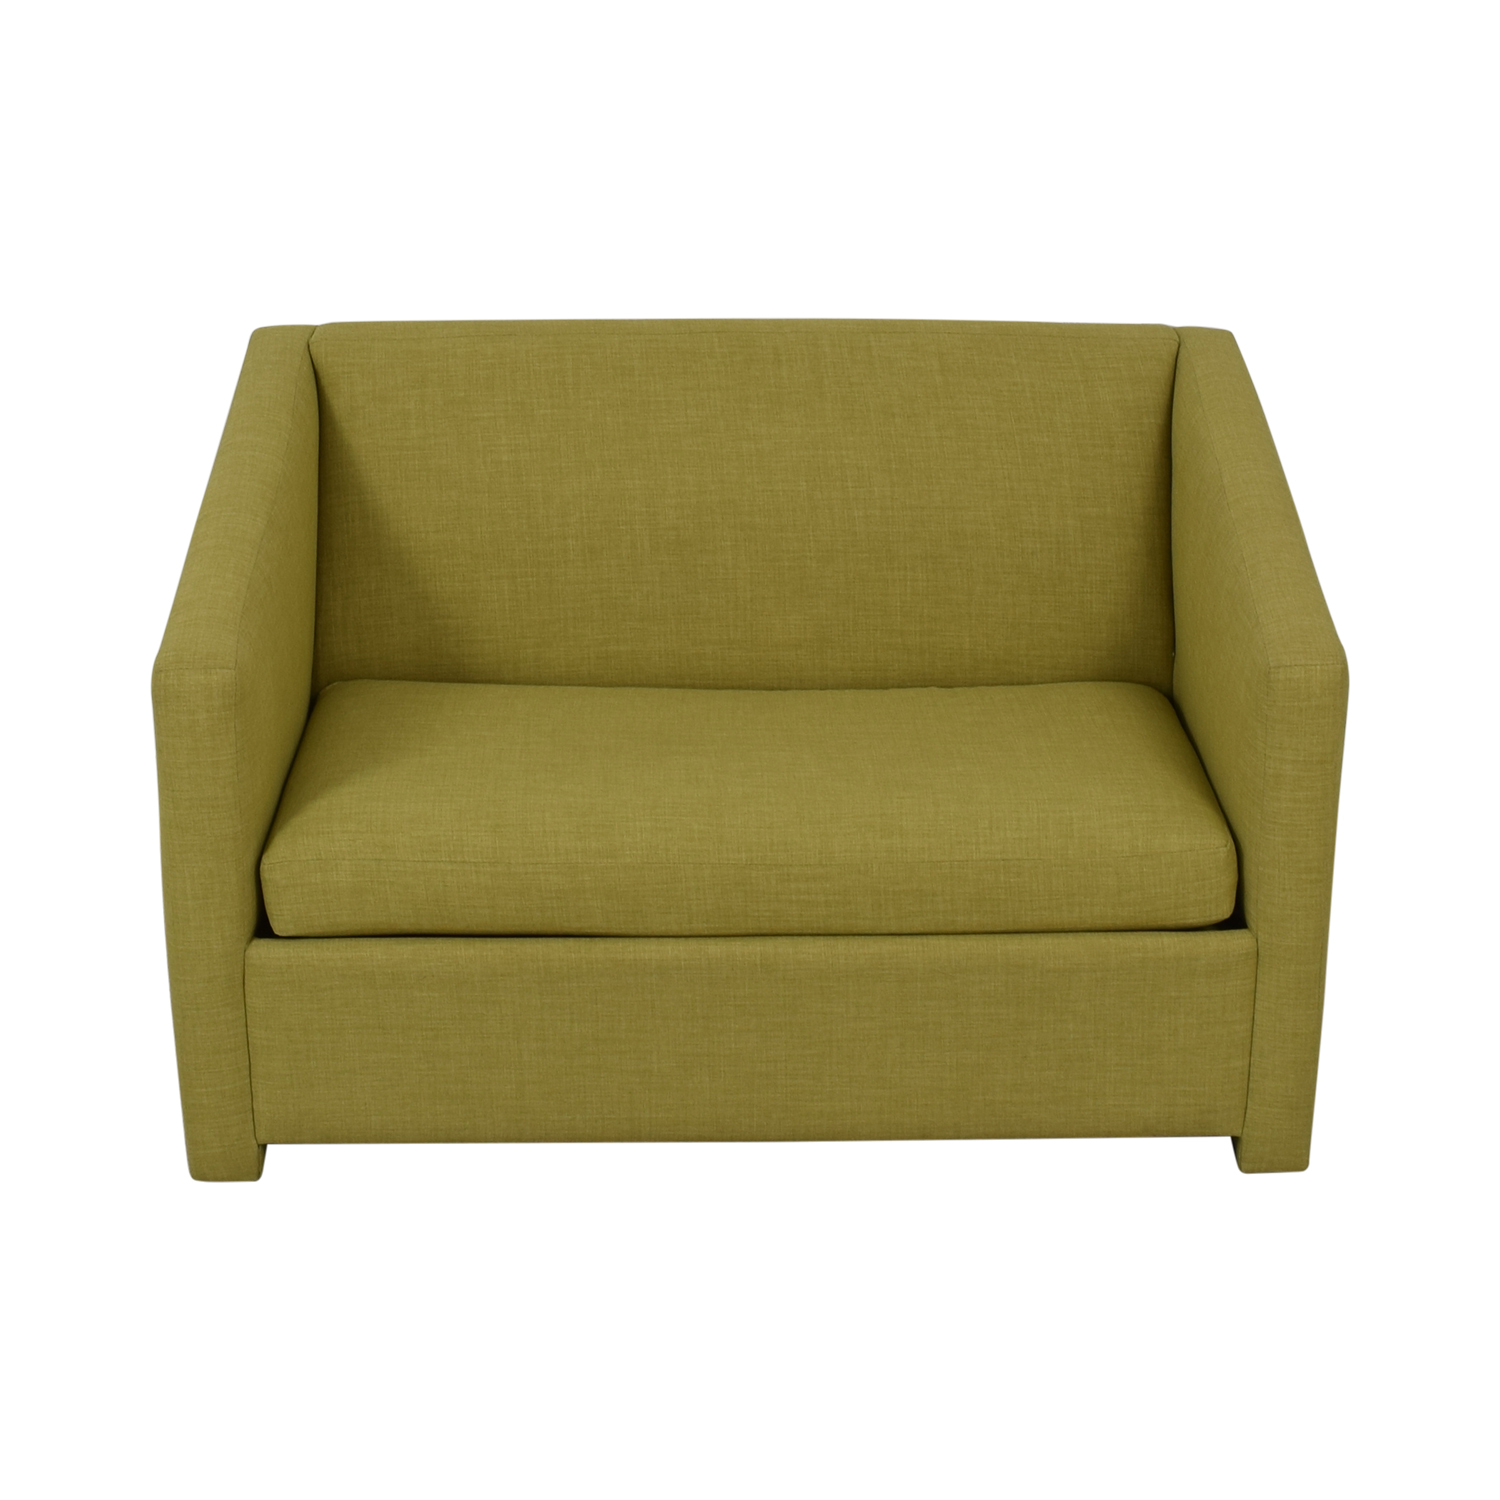 CB2 Lime Green Loveseat with Pullout Bed CB2